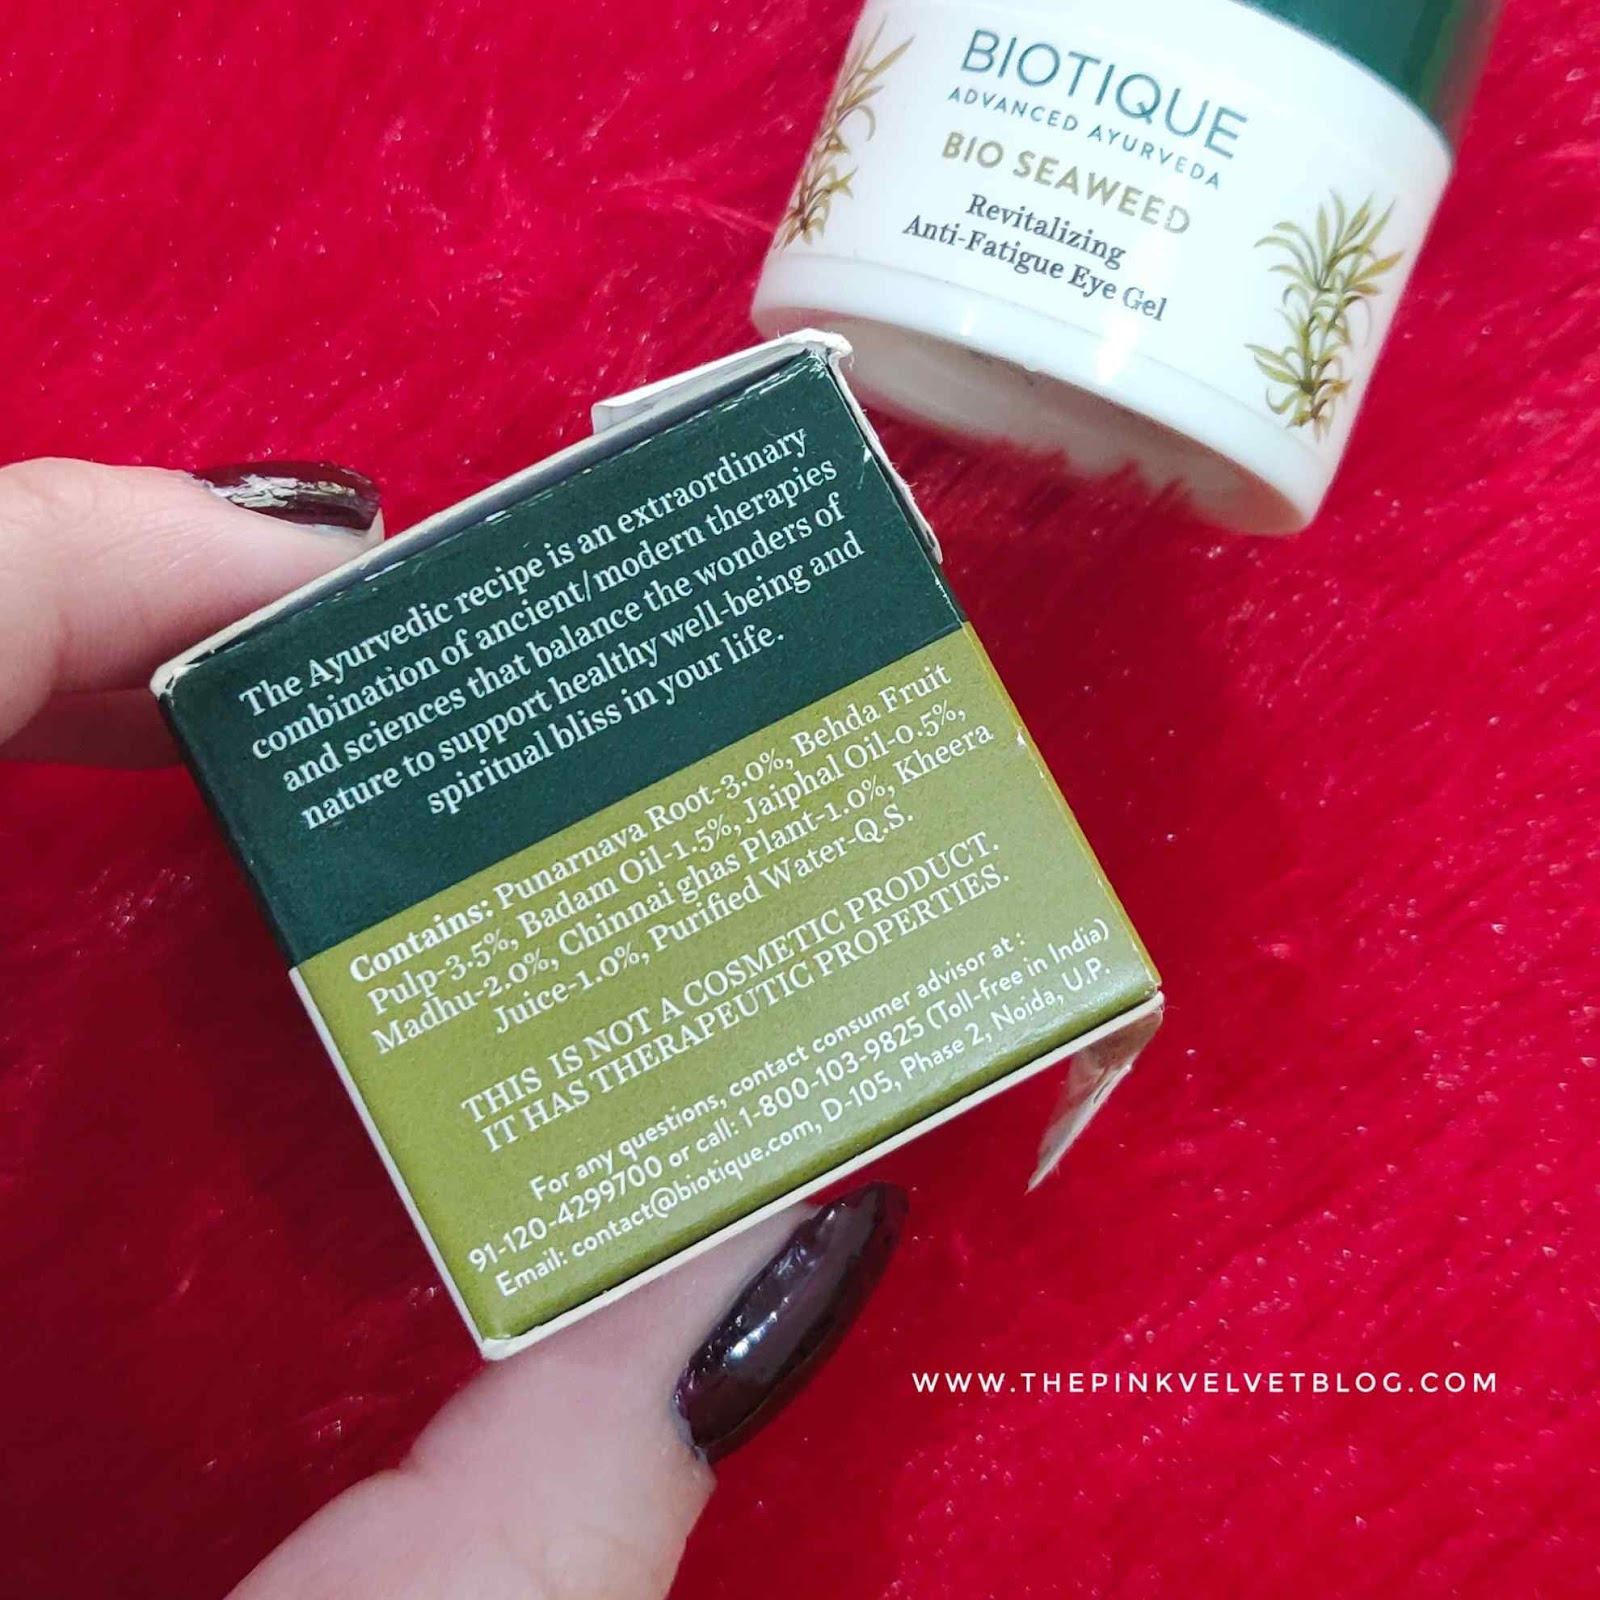 Biotique Bio Seaweed Revitalizing Anti-Fatigue Eye Gel Review - Ingredients